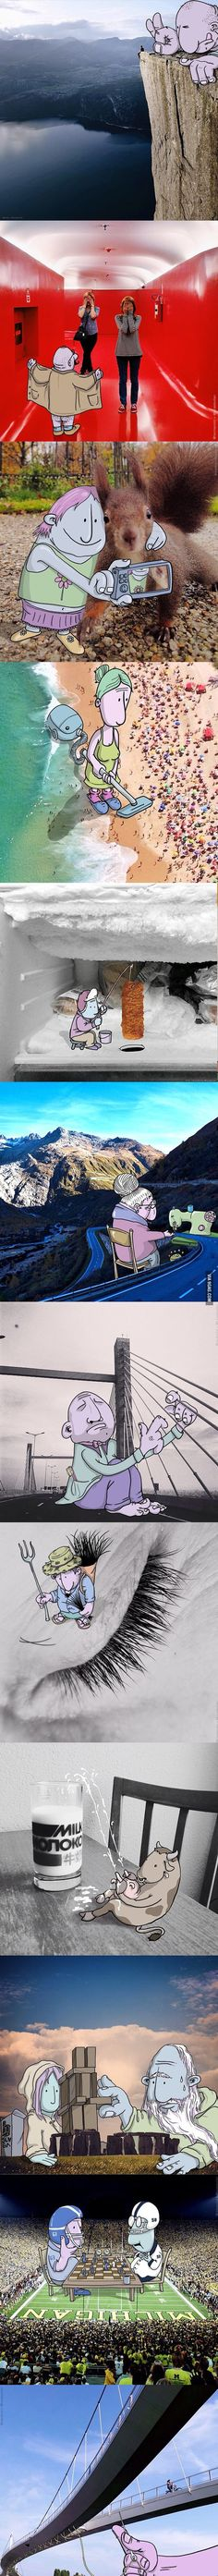 Illustrator adds cartoons to real life photos and they are awesome! (Part 2)